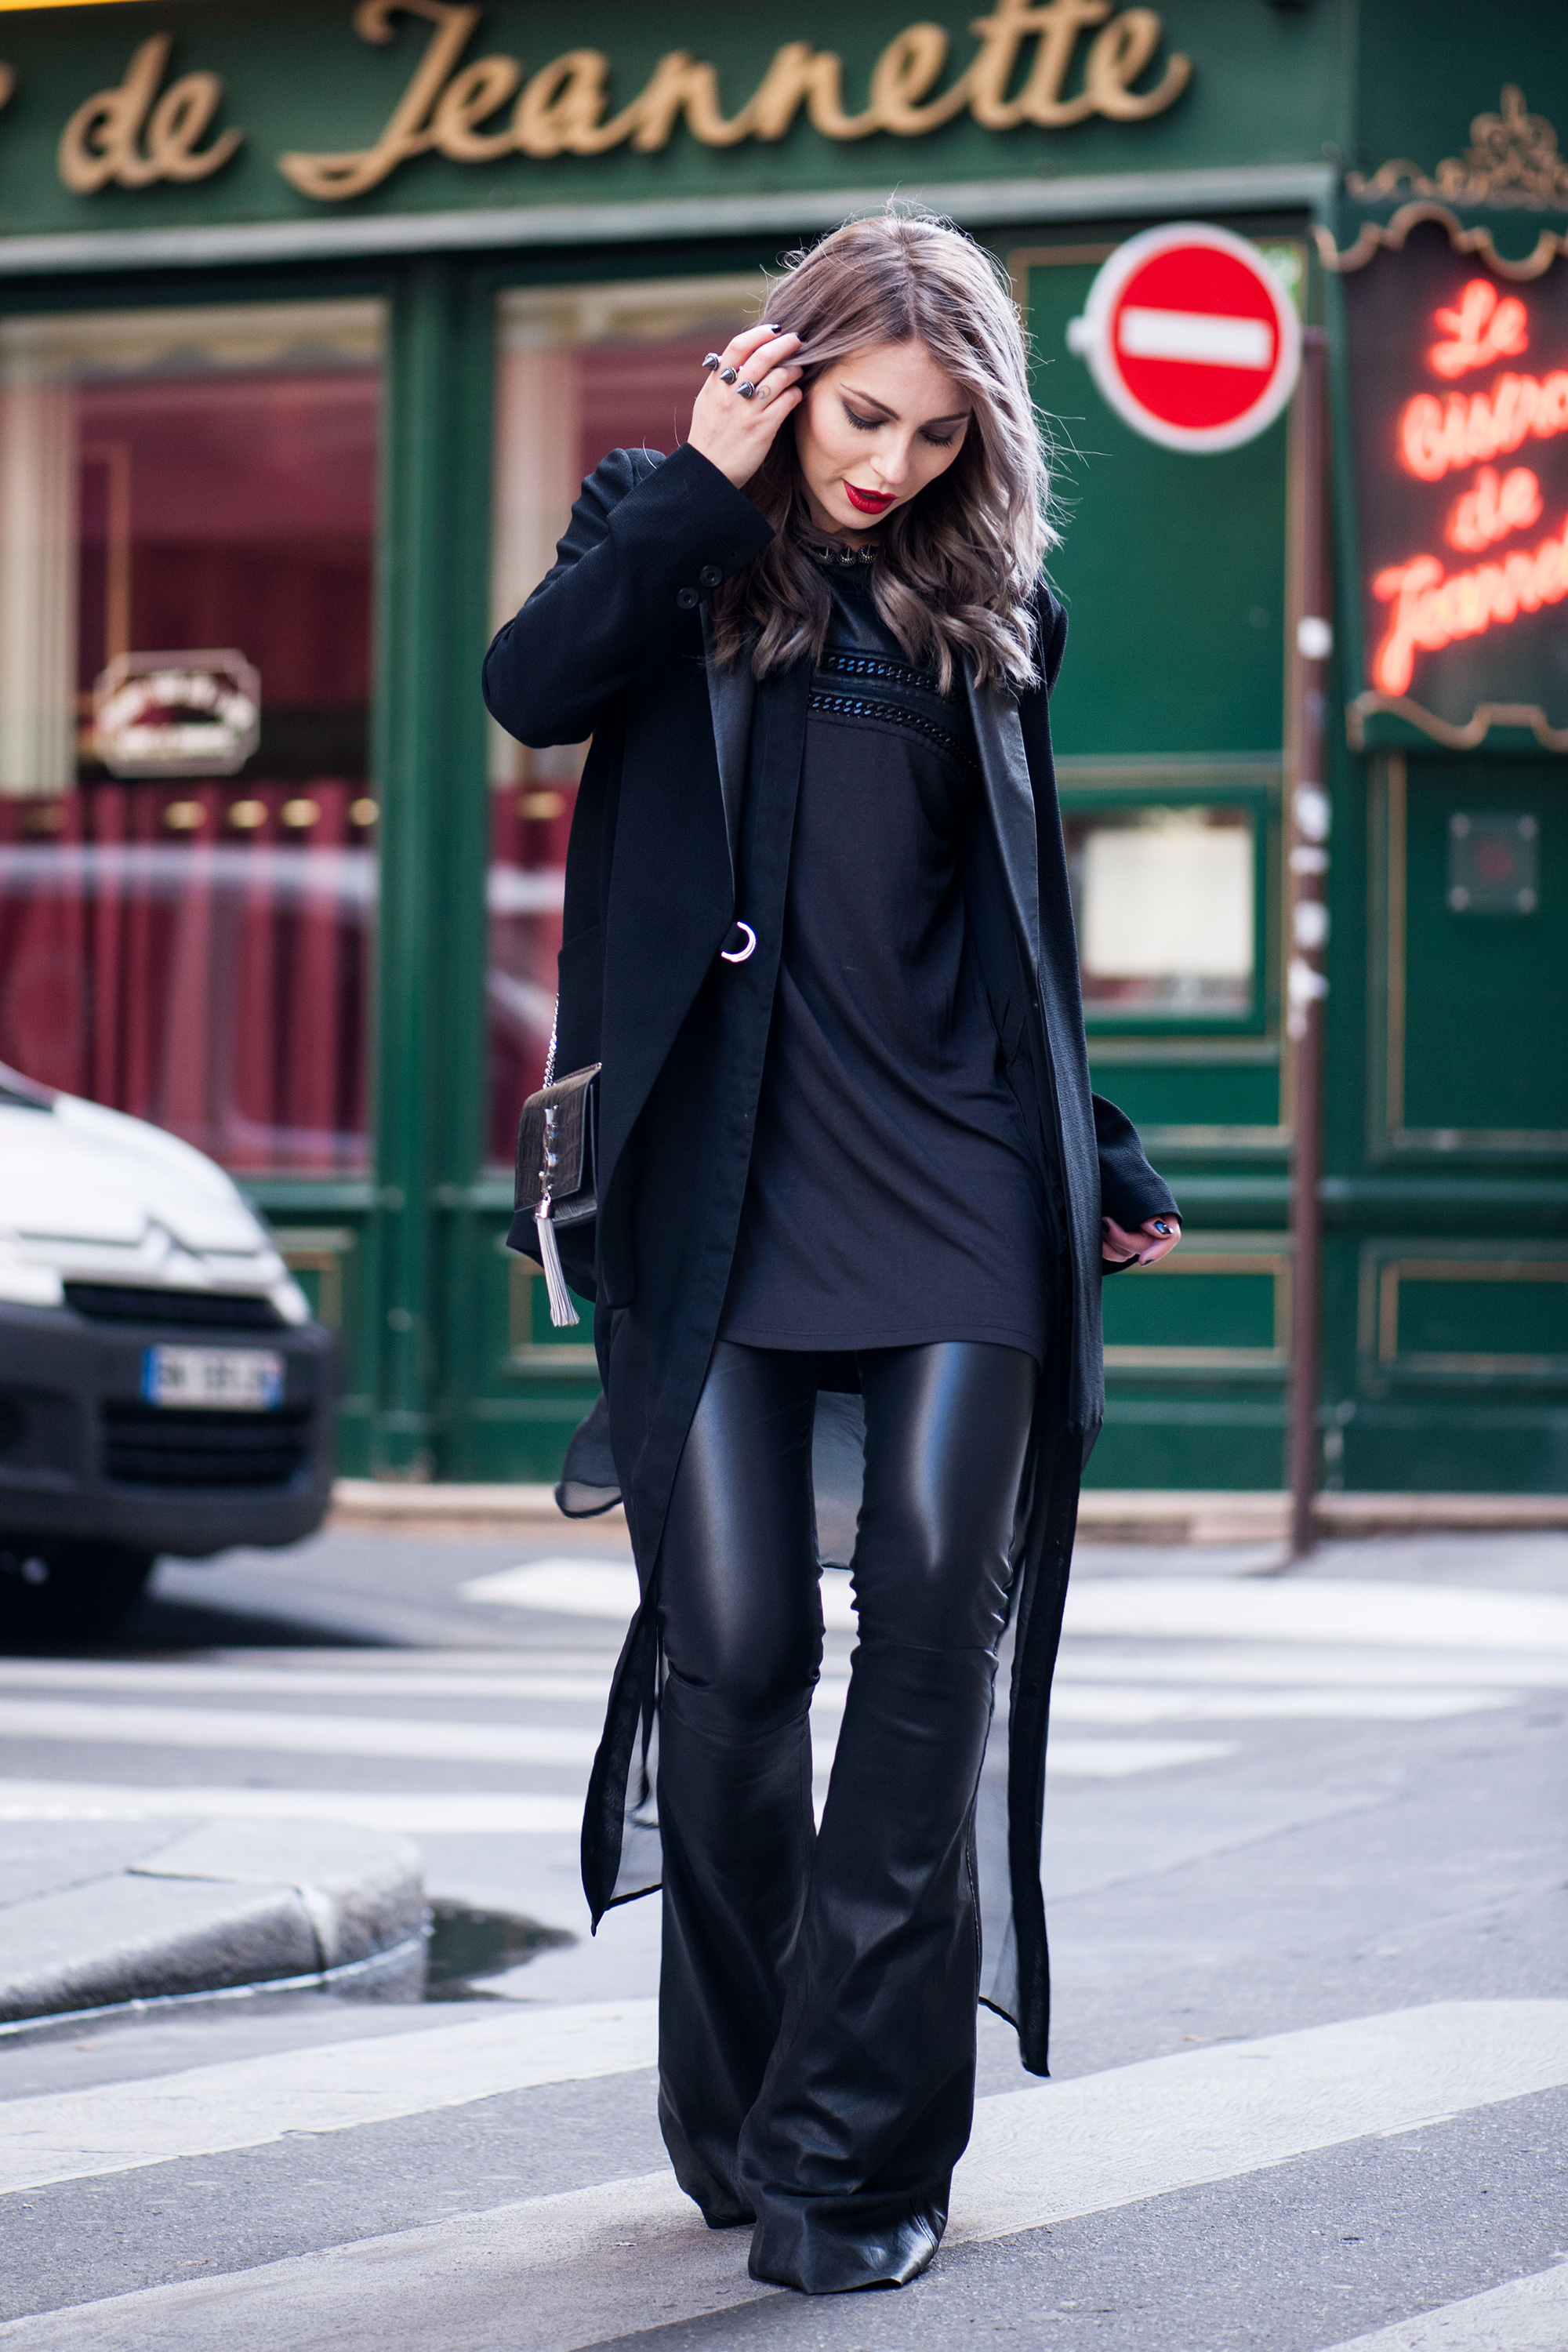 70s-leather-flared-pants-streetstyle-paris-1